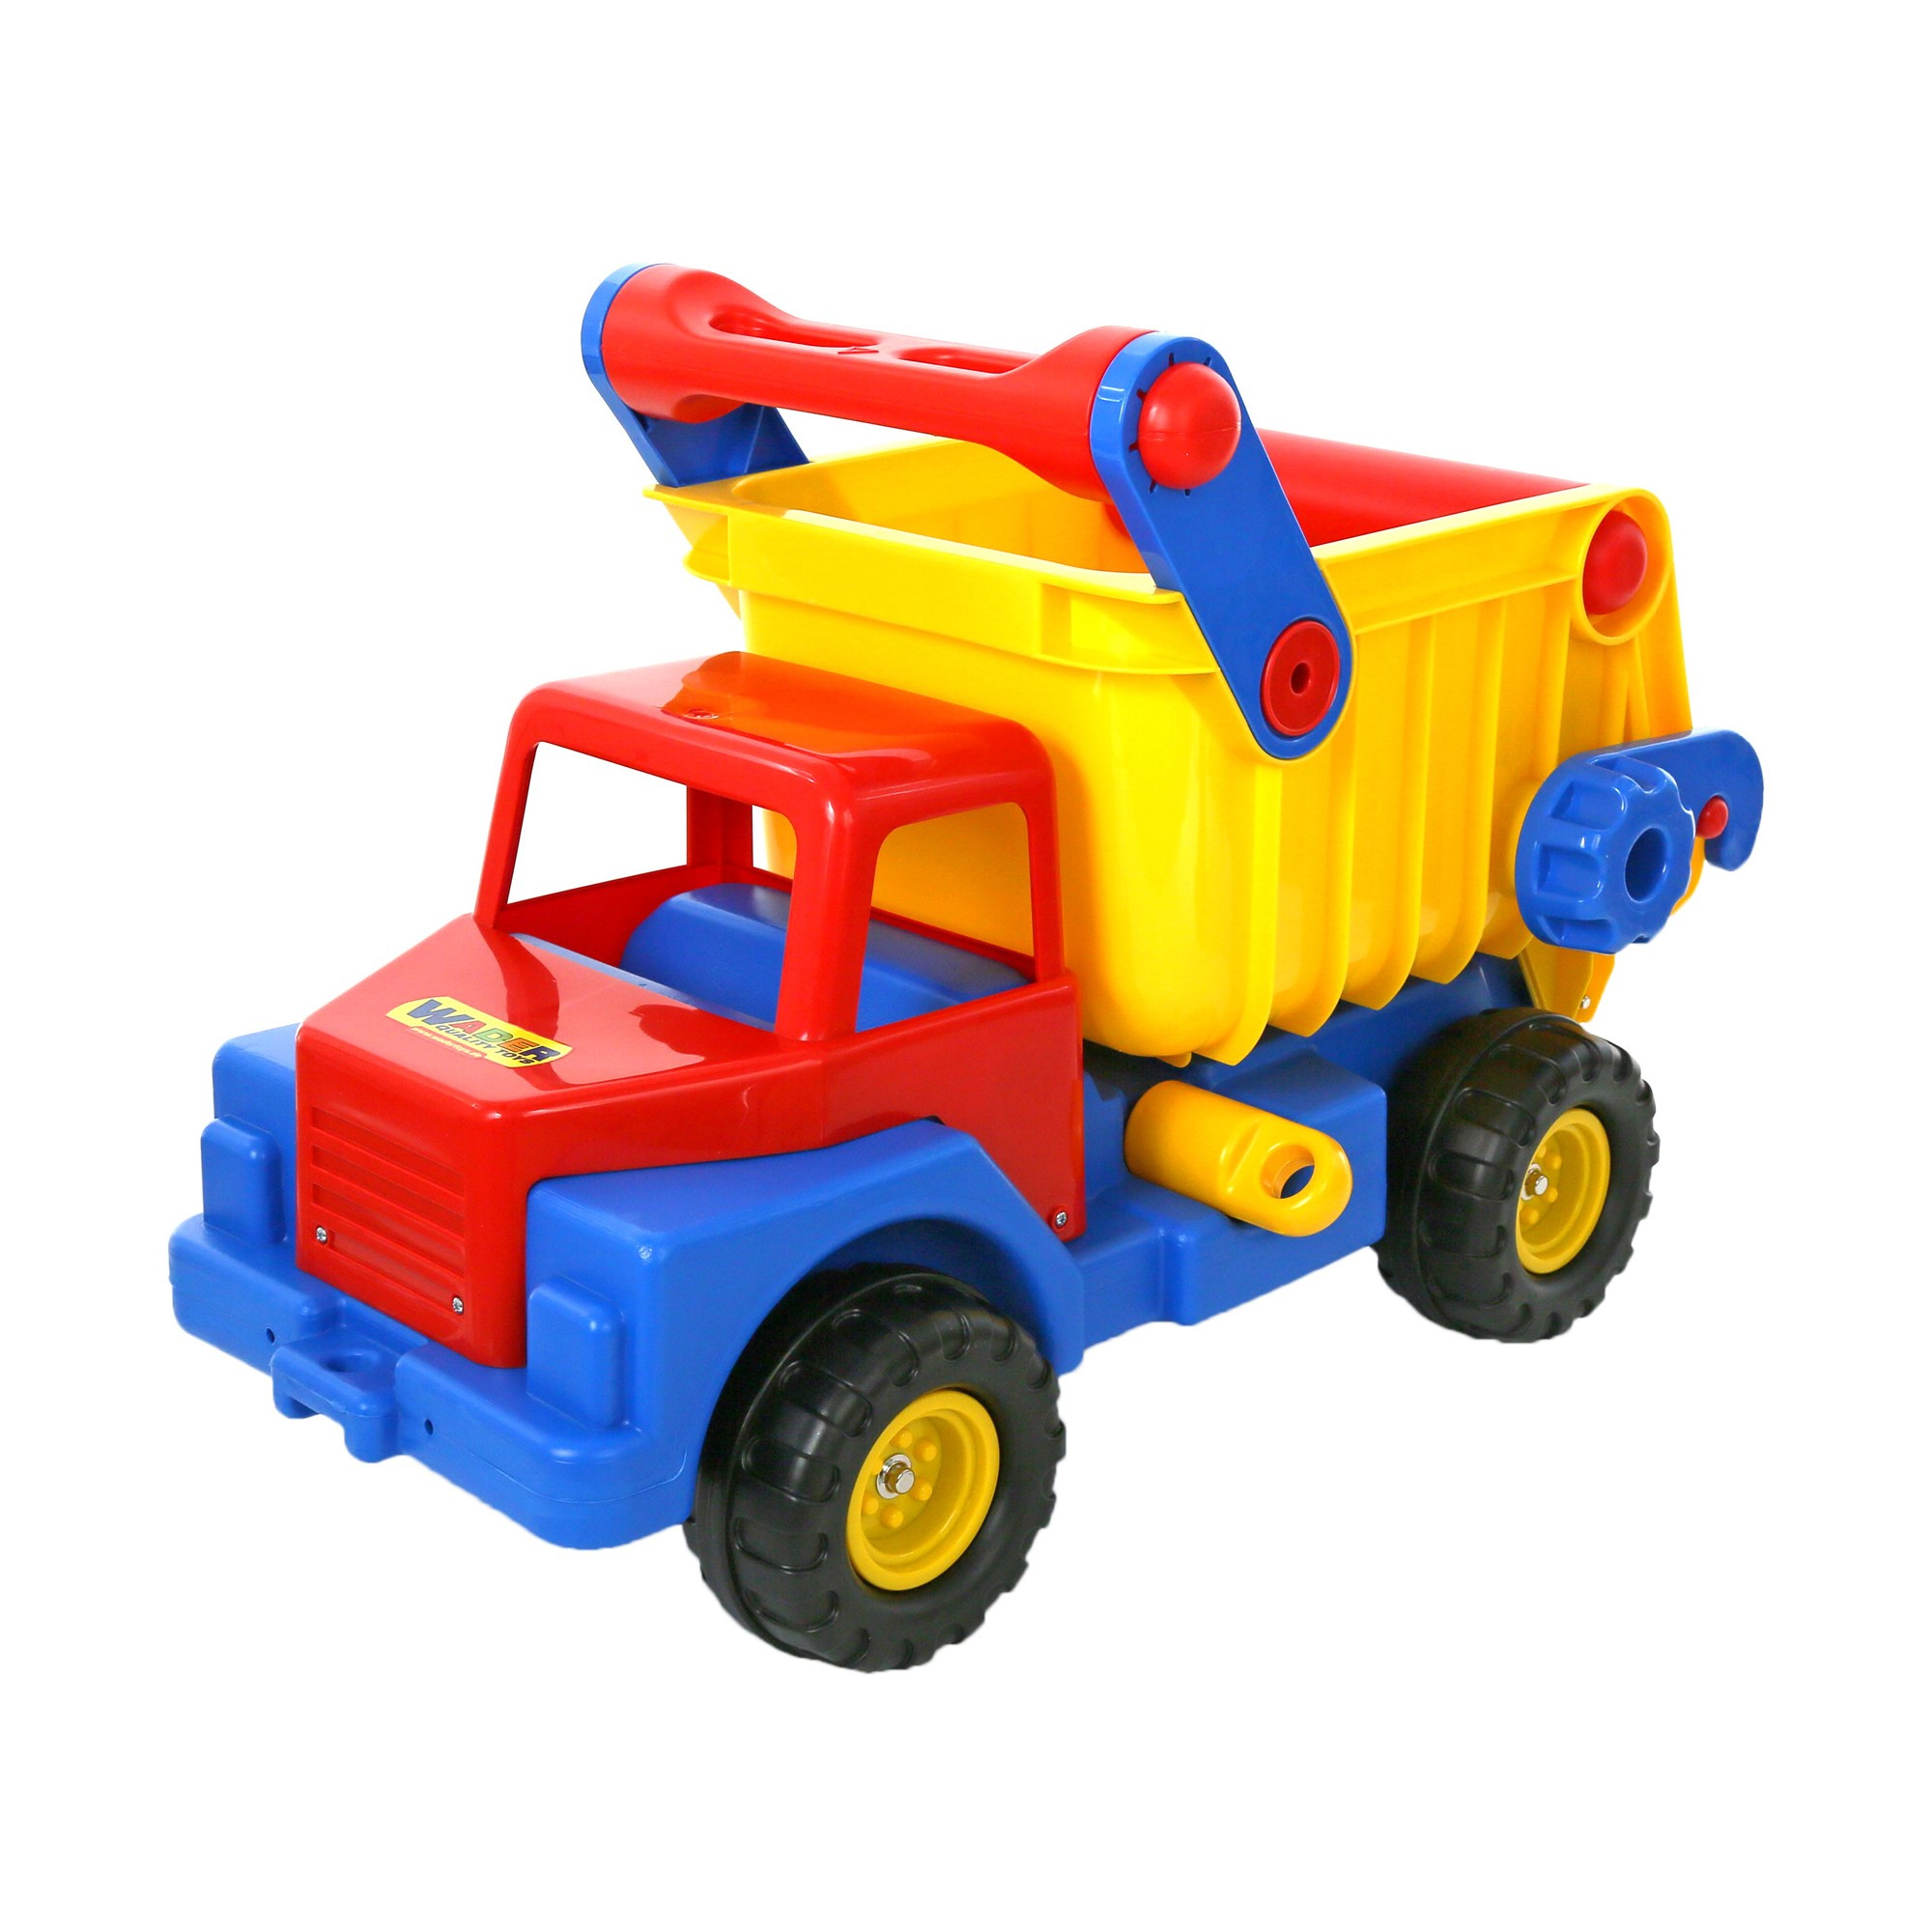 2ac5faed131 Wader Quality Toys - Giant Dump Truck Vehicle | Products | Dump ...